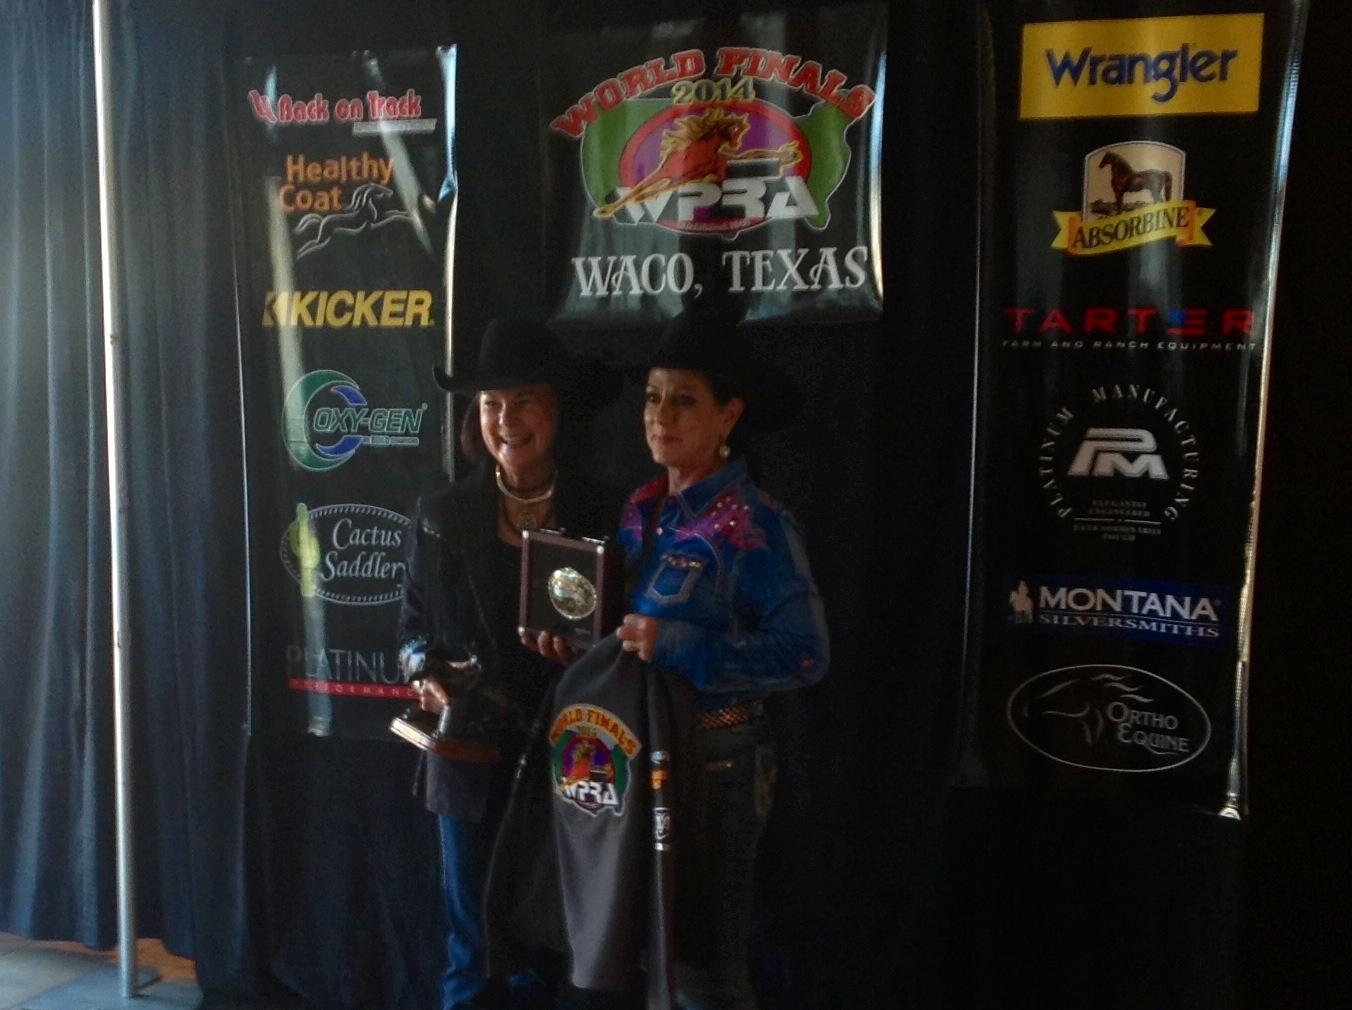 WPRA WORLD FINALS 2014